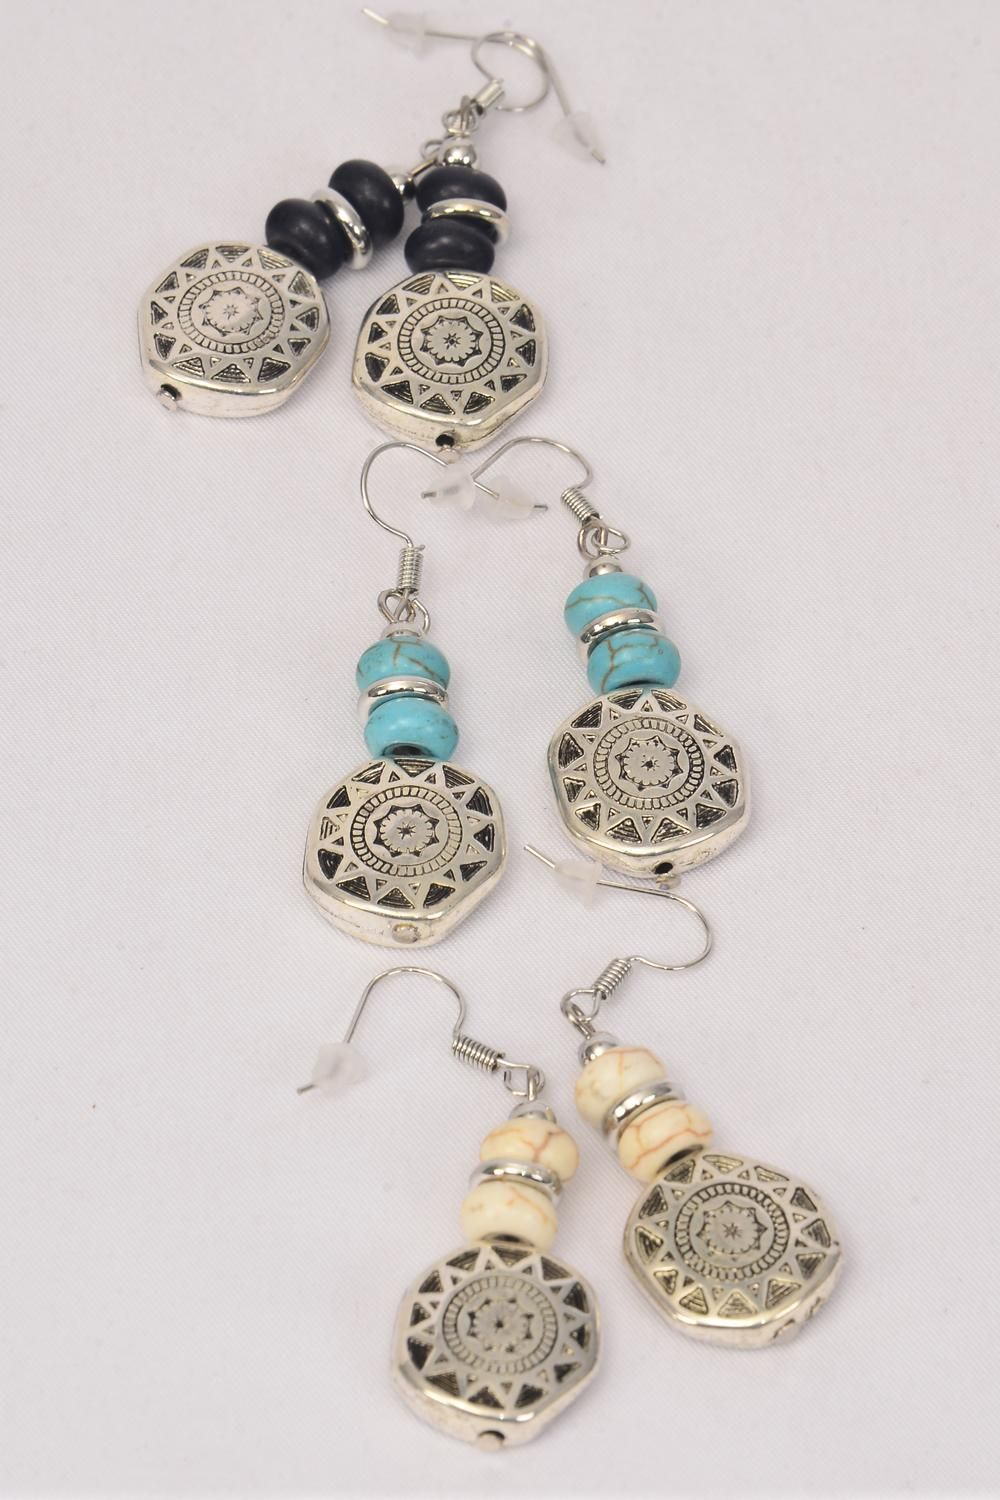 "Earrings Antique Aztec Semiprecious Stone/DZ **Fish Hook** Size-1.25""x 1"" Wide,4 Black,4 Ivory,4 Turquoise Asst,Earring Card & OPP Bag & UPC Code"